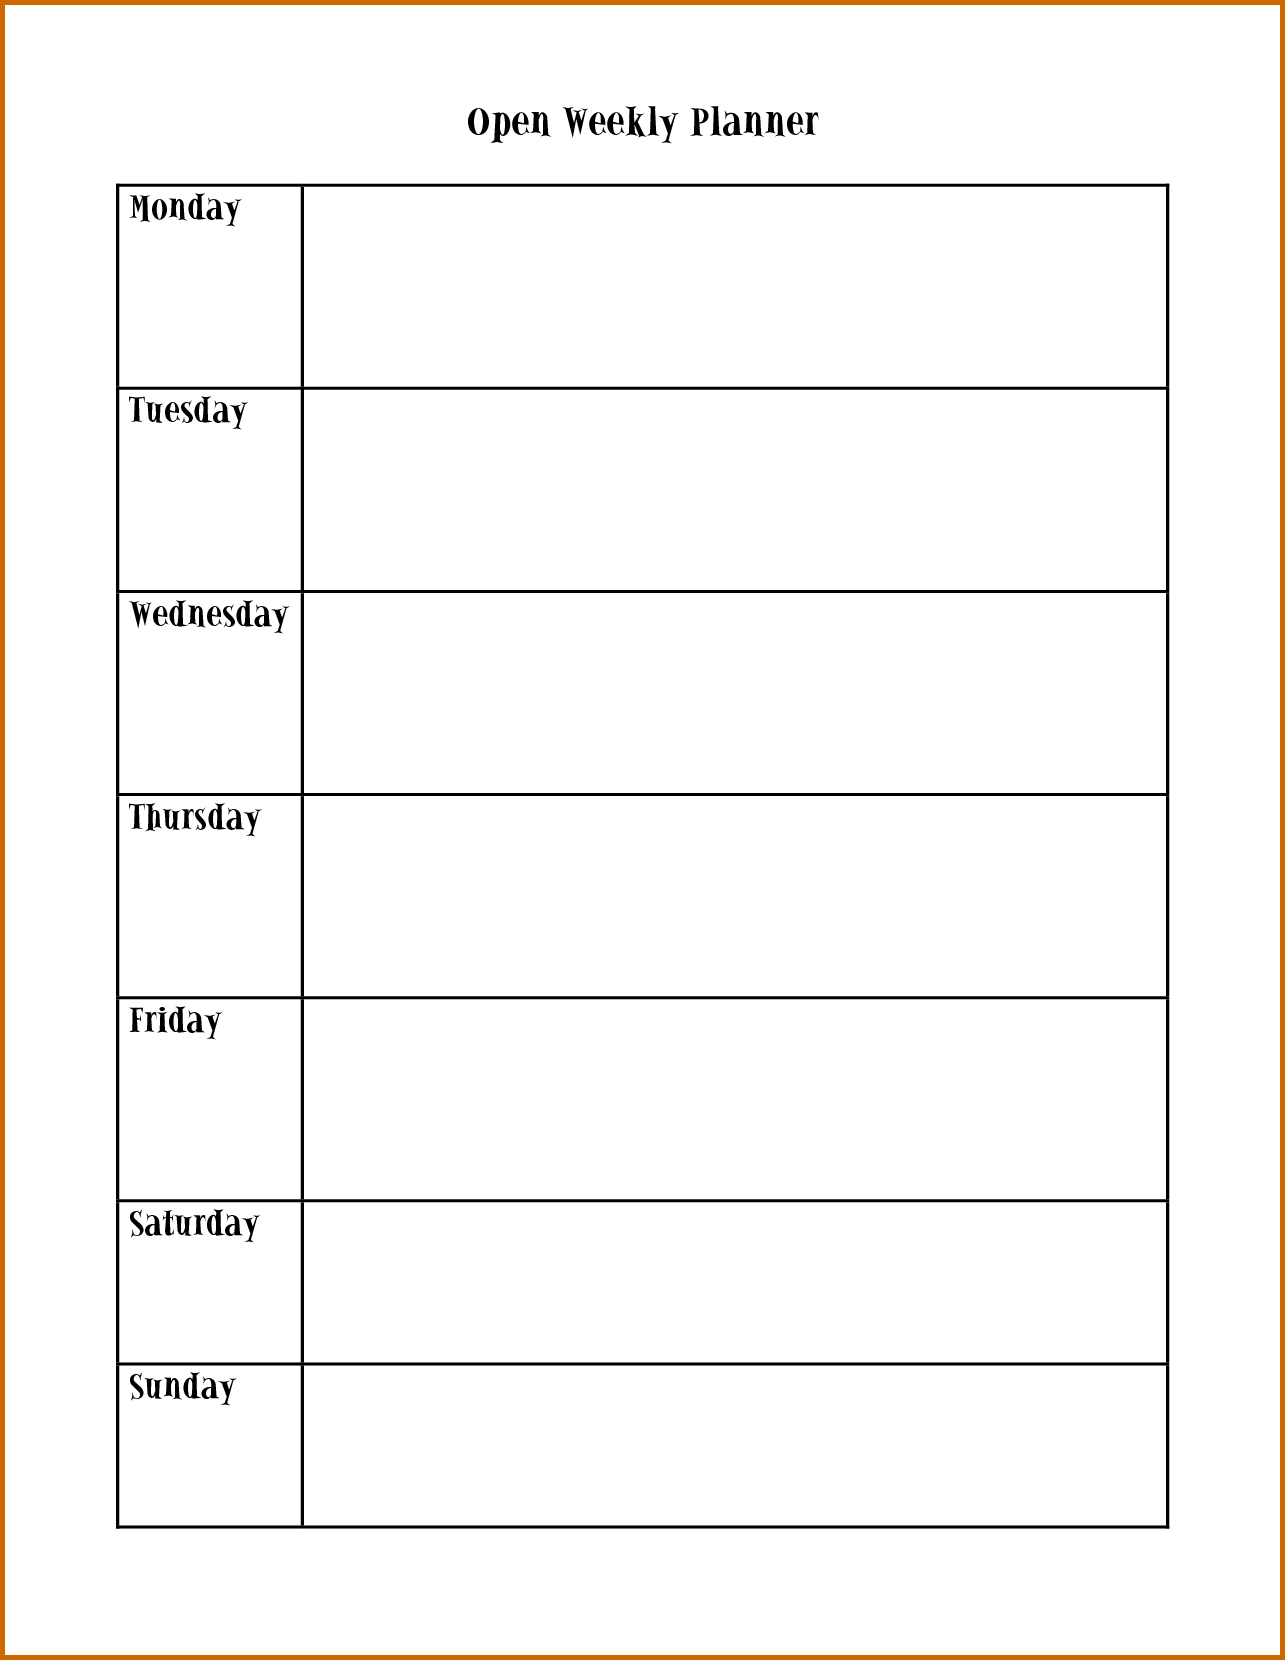 Weekly Planner Template Monday To Friday - Infer.ifreezer.co with Blank Weekly Monday Through Friday Calendar Template